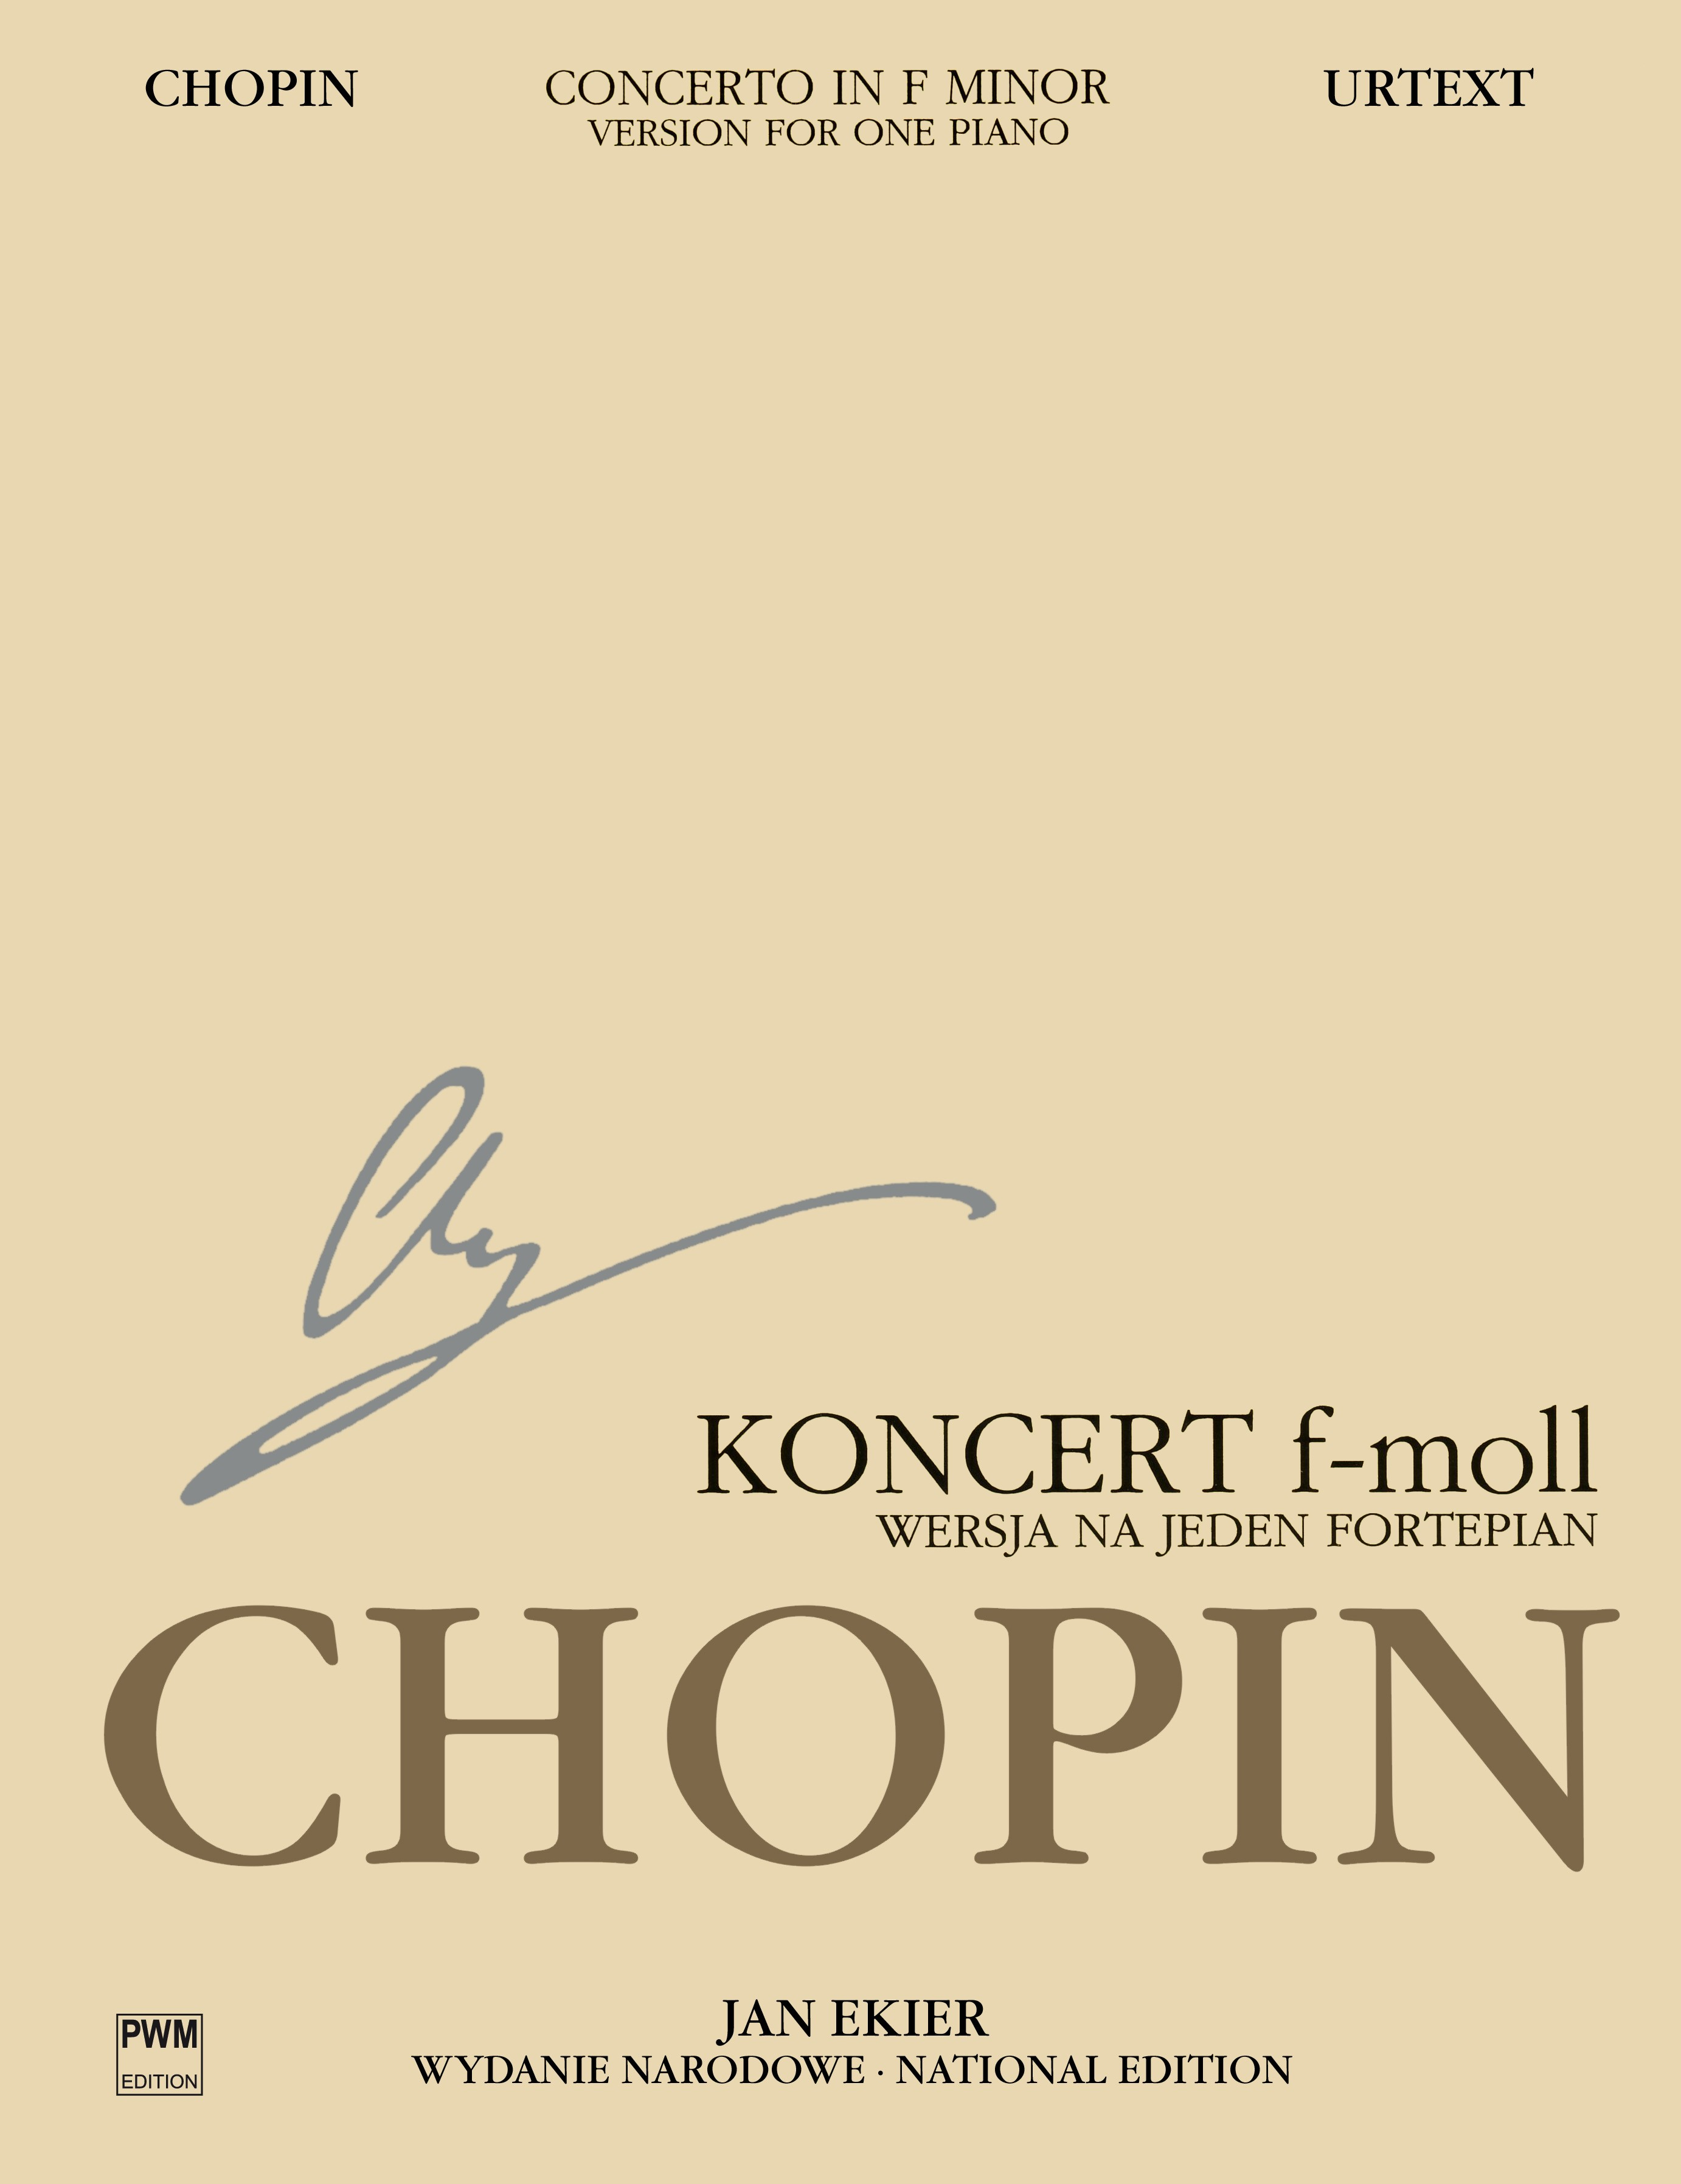 Frédéric Chopin: National Edition: Concerto In F Minor Op 21 13B: Piano: